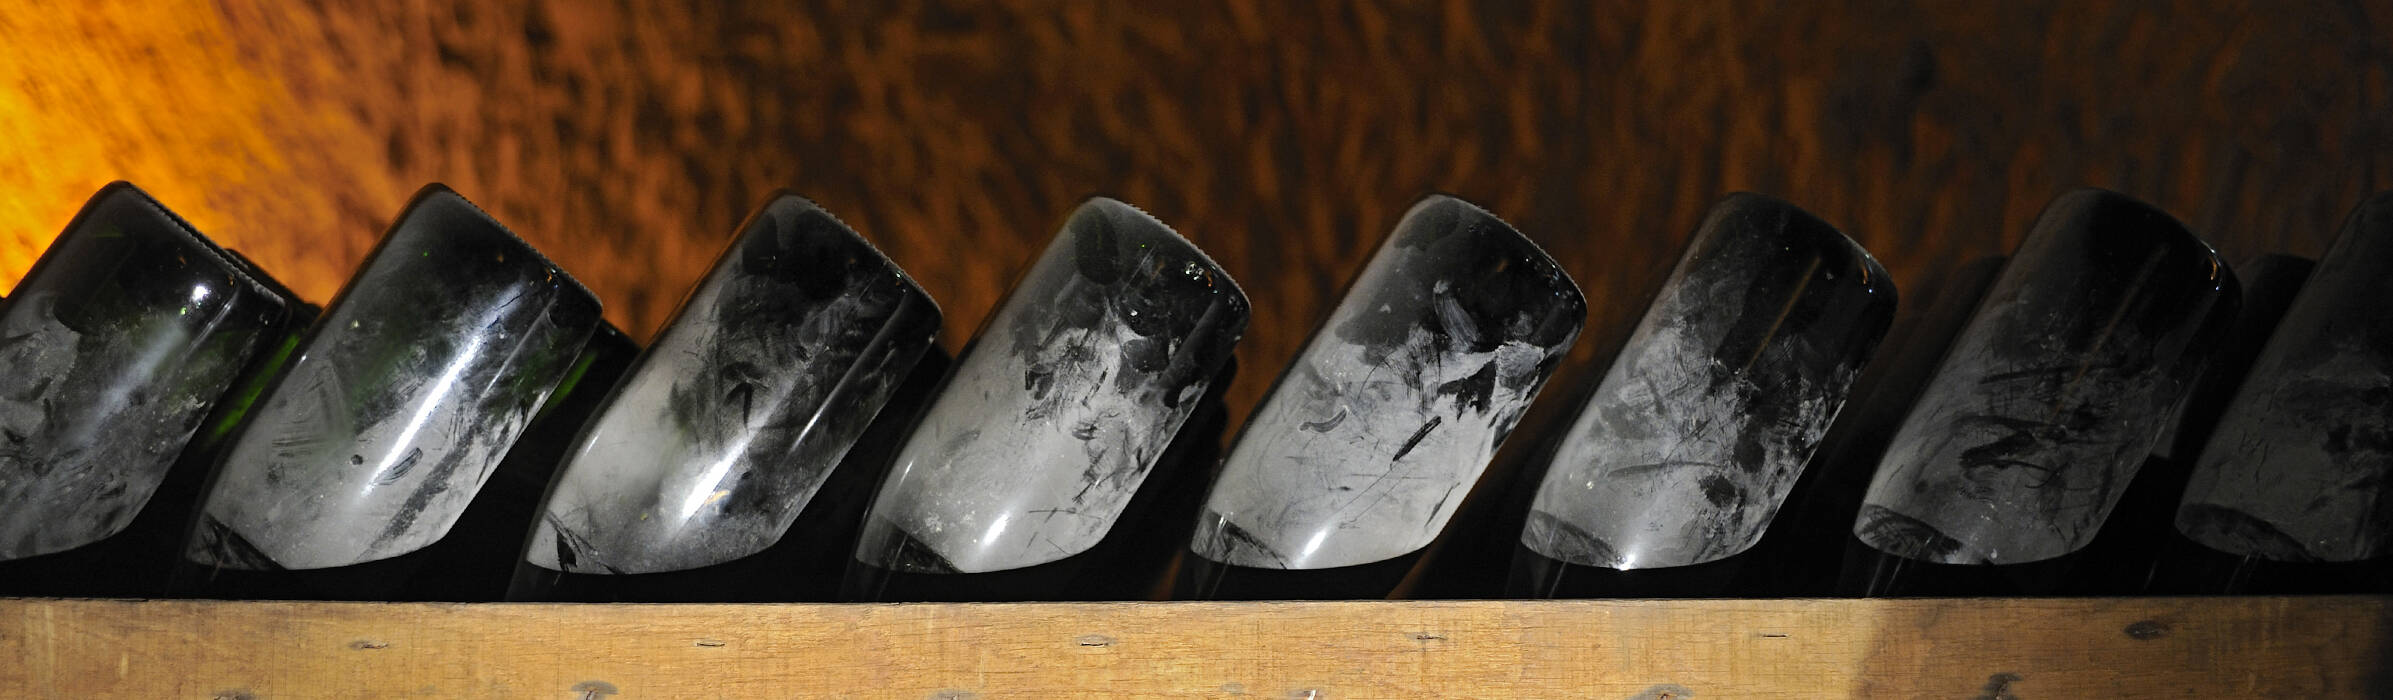 Veuve Clicquot - From vine to wine